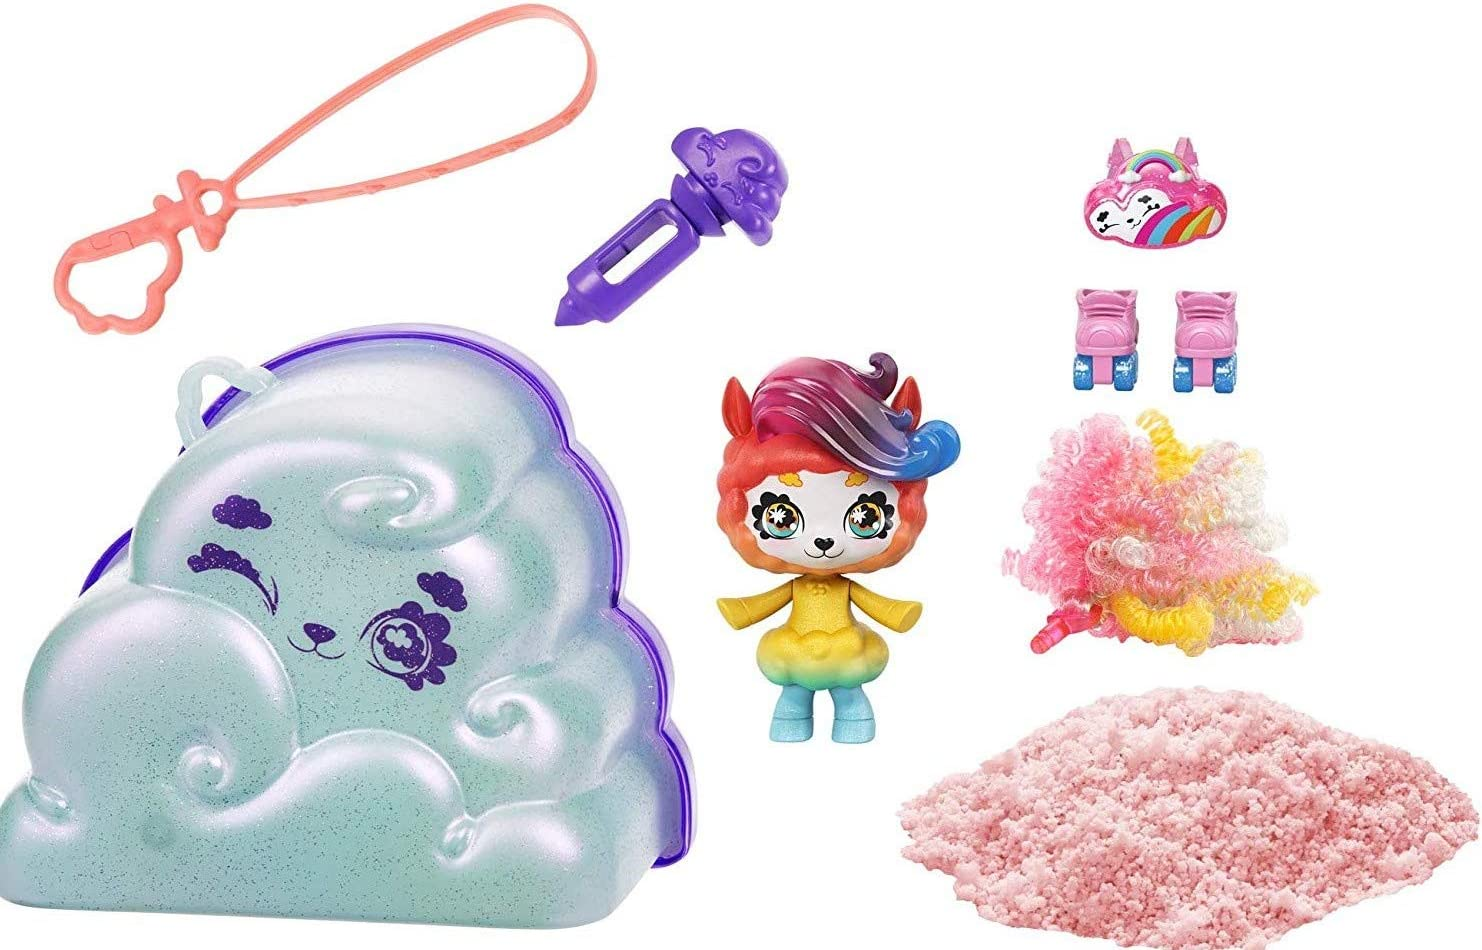 Mattel Cloudees Cloud Themed Toy with Hidden Surprise, Interactive Cloud Toy with Accessories, Toys for Kids 4 and Up